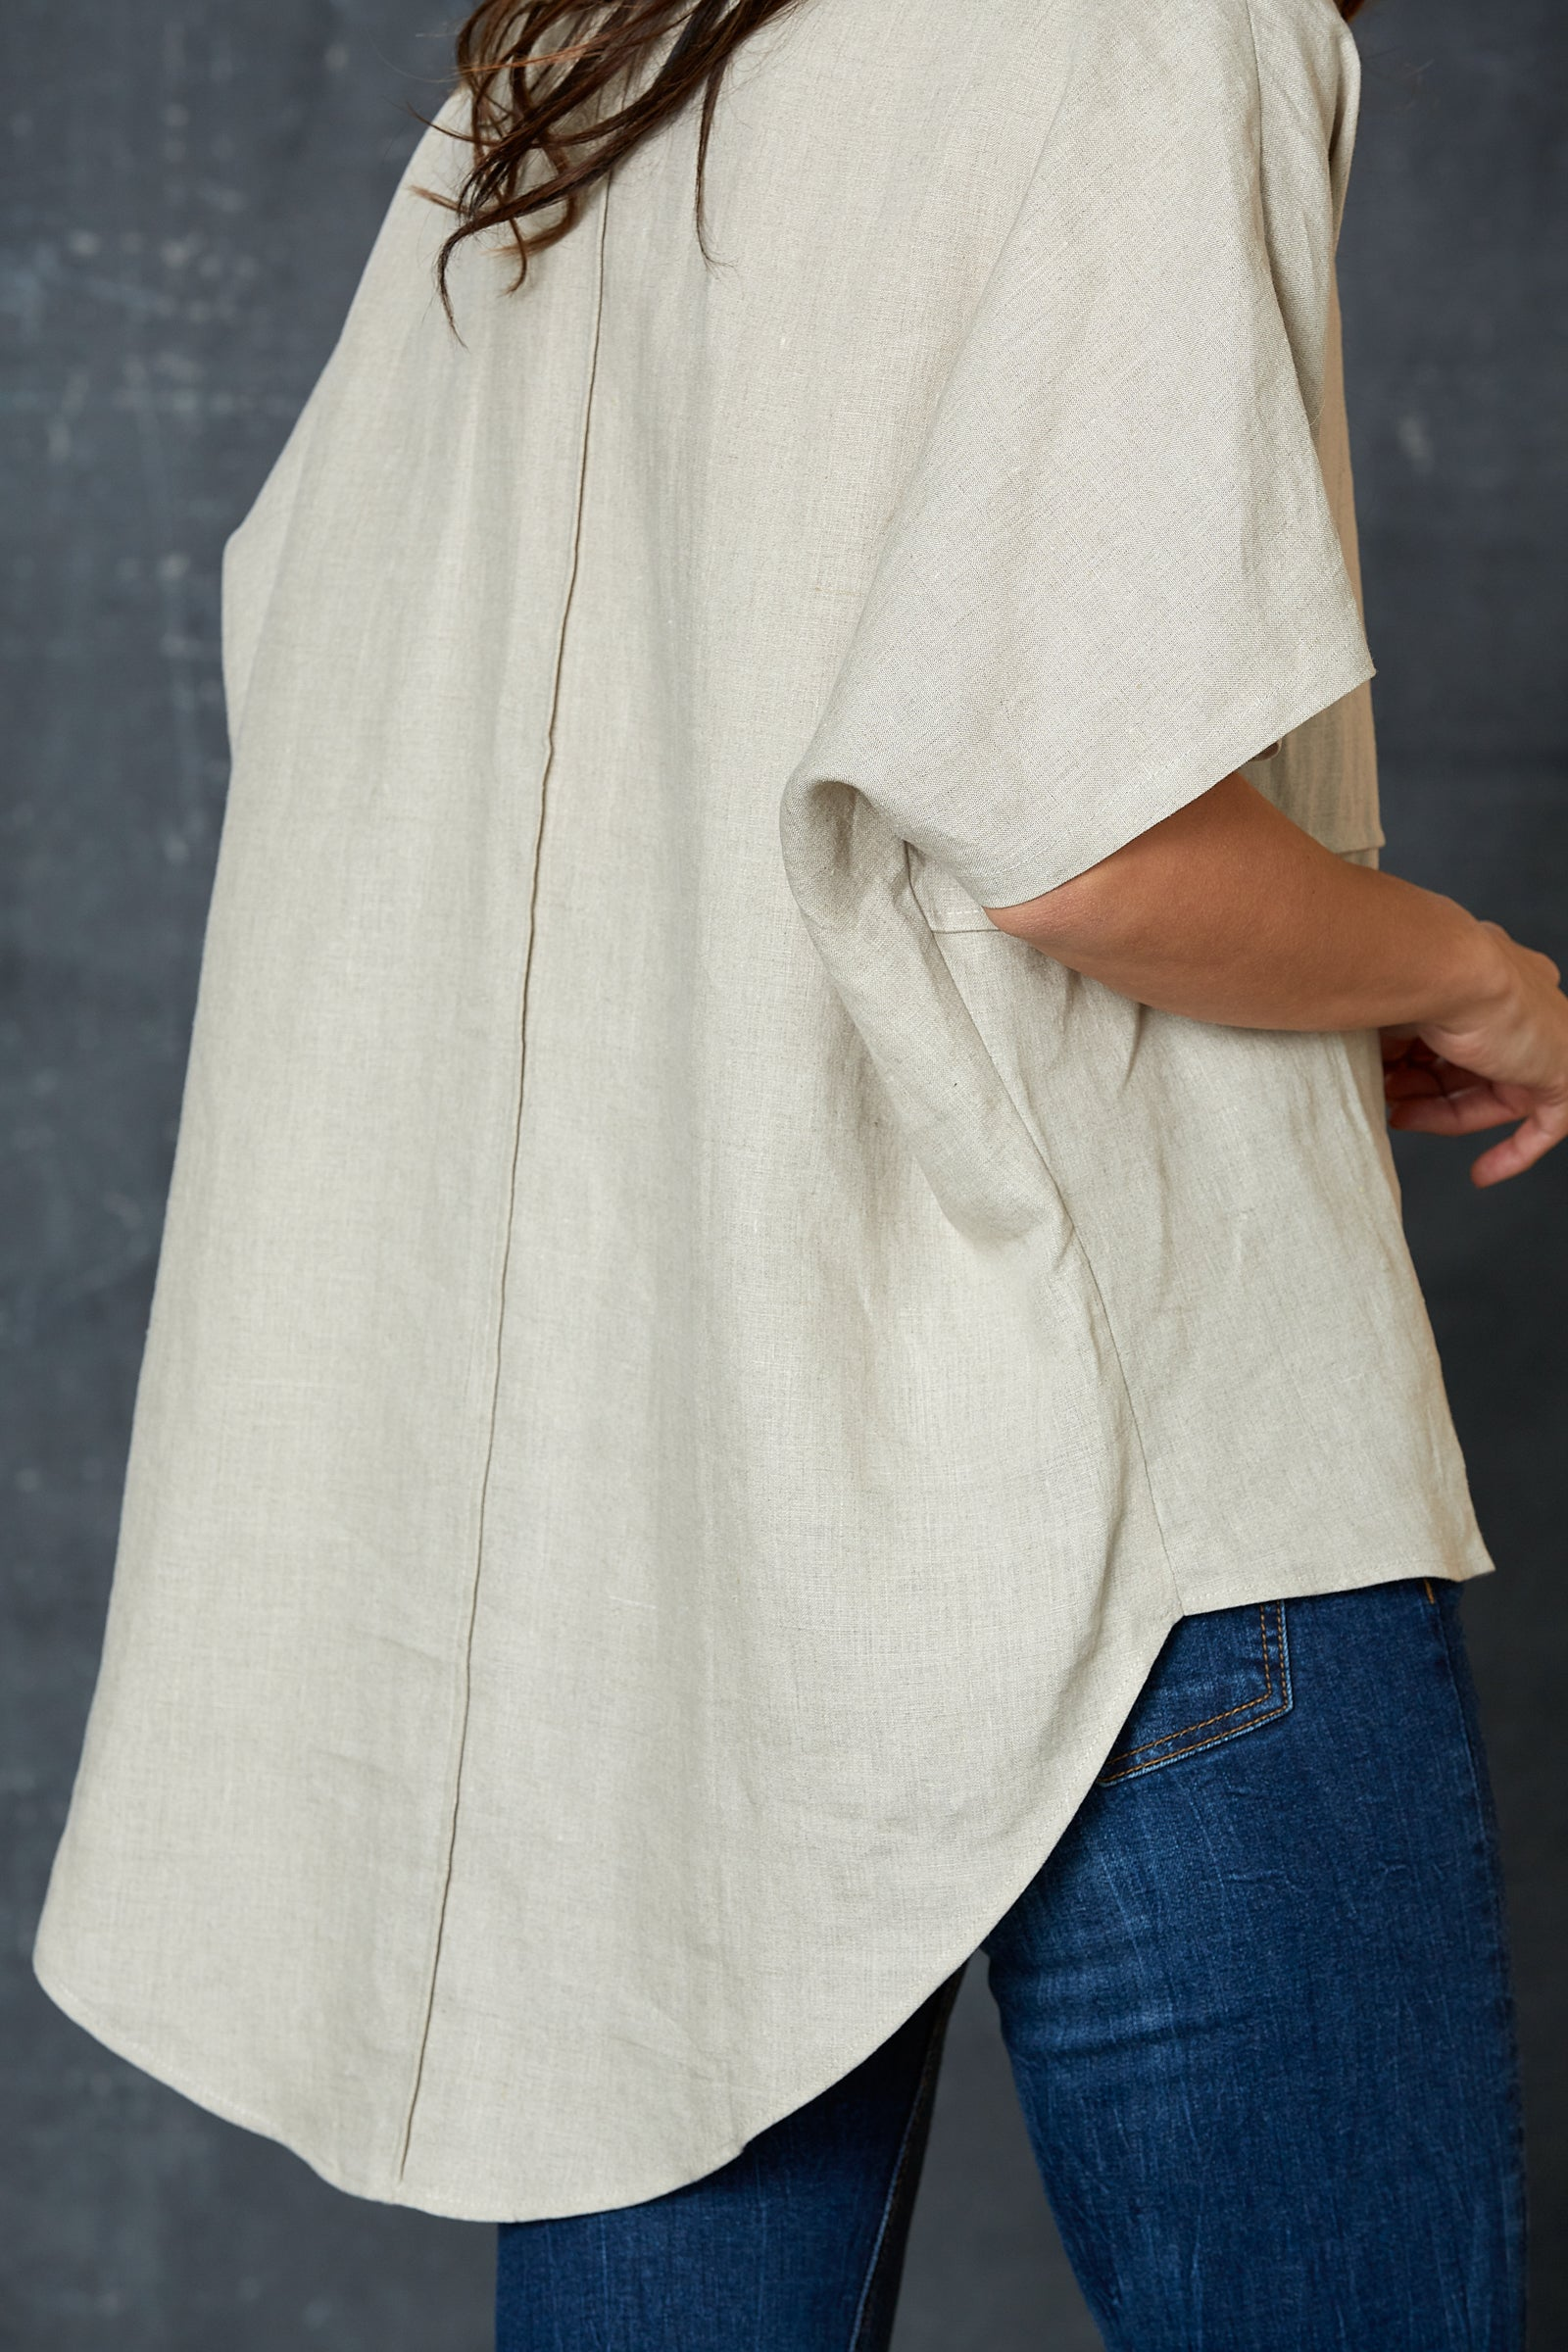 Bask Easy Top - Flax - eb&ive Clothing - Top S/S Linen One Size